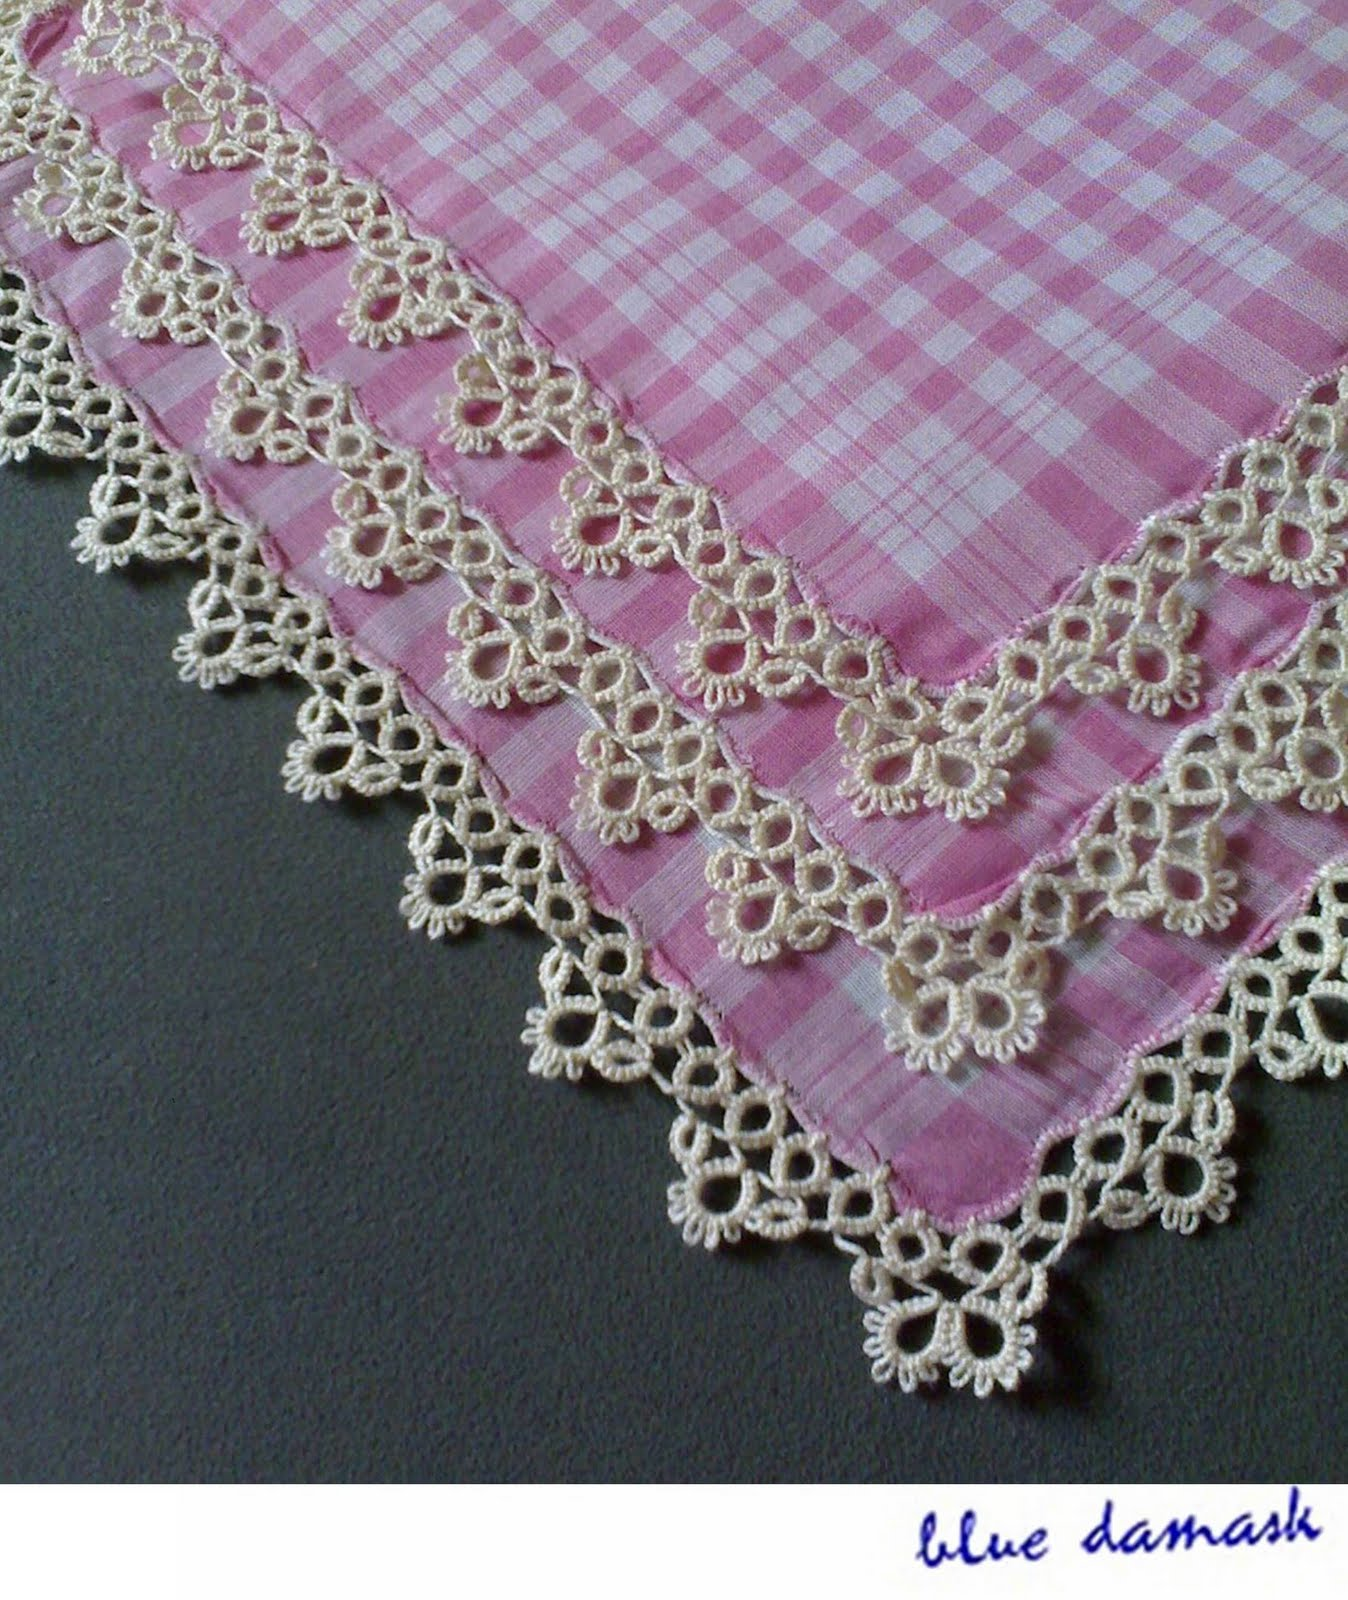 pink gingham wallpaper